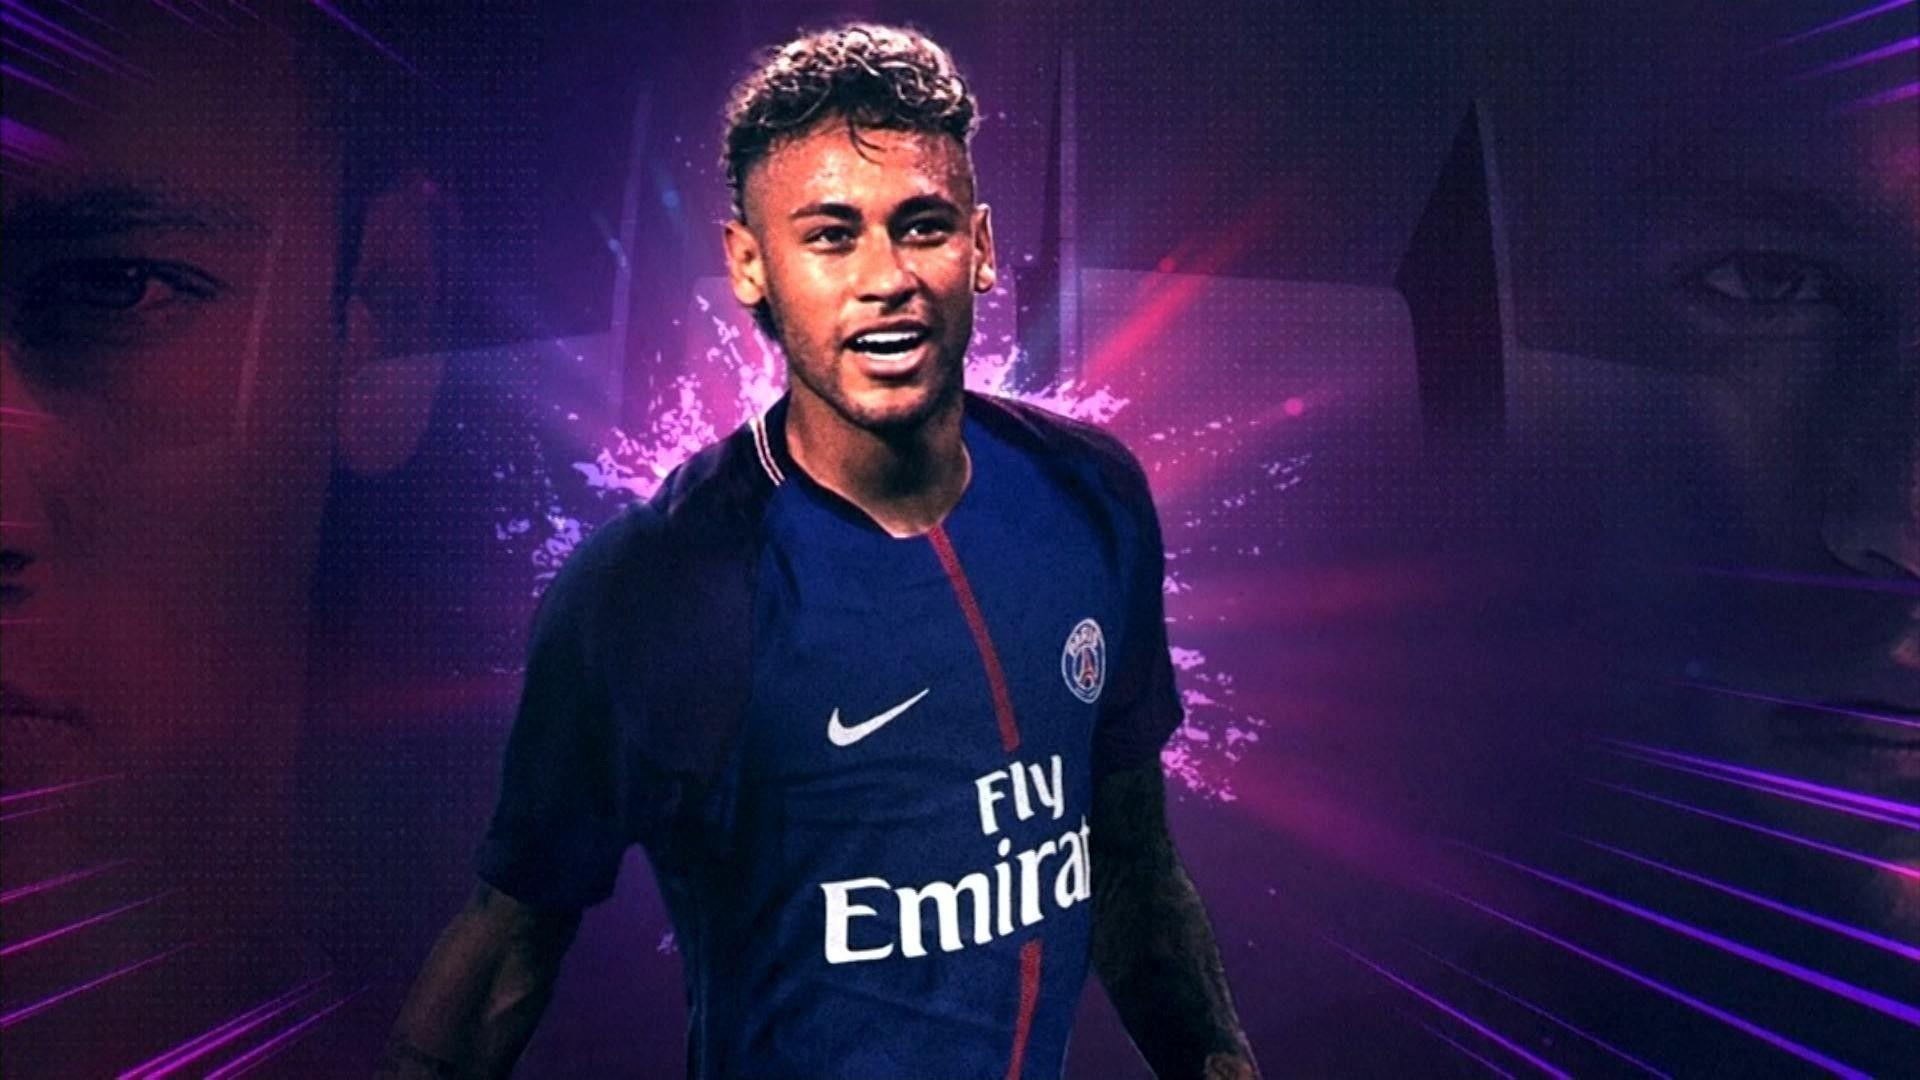 Neymar PSG Wallpapers - Wallpaper Cave